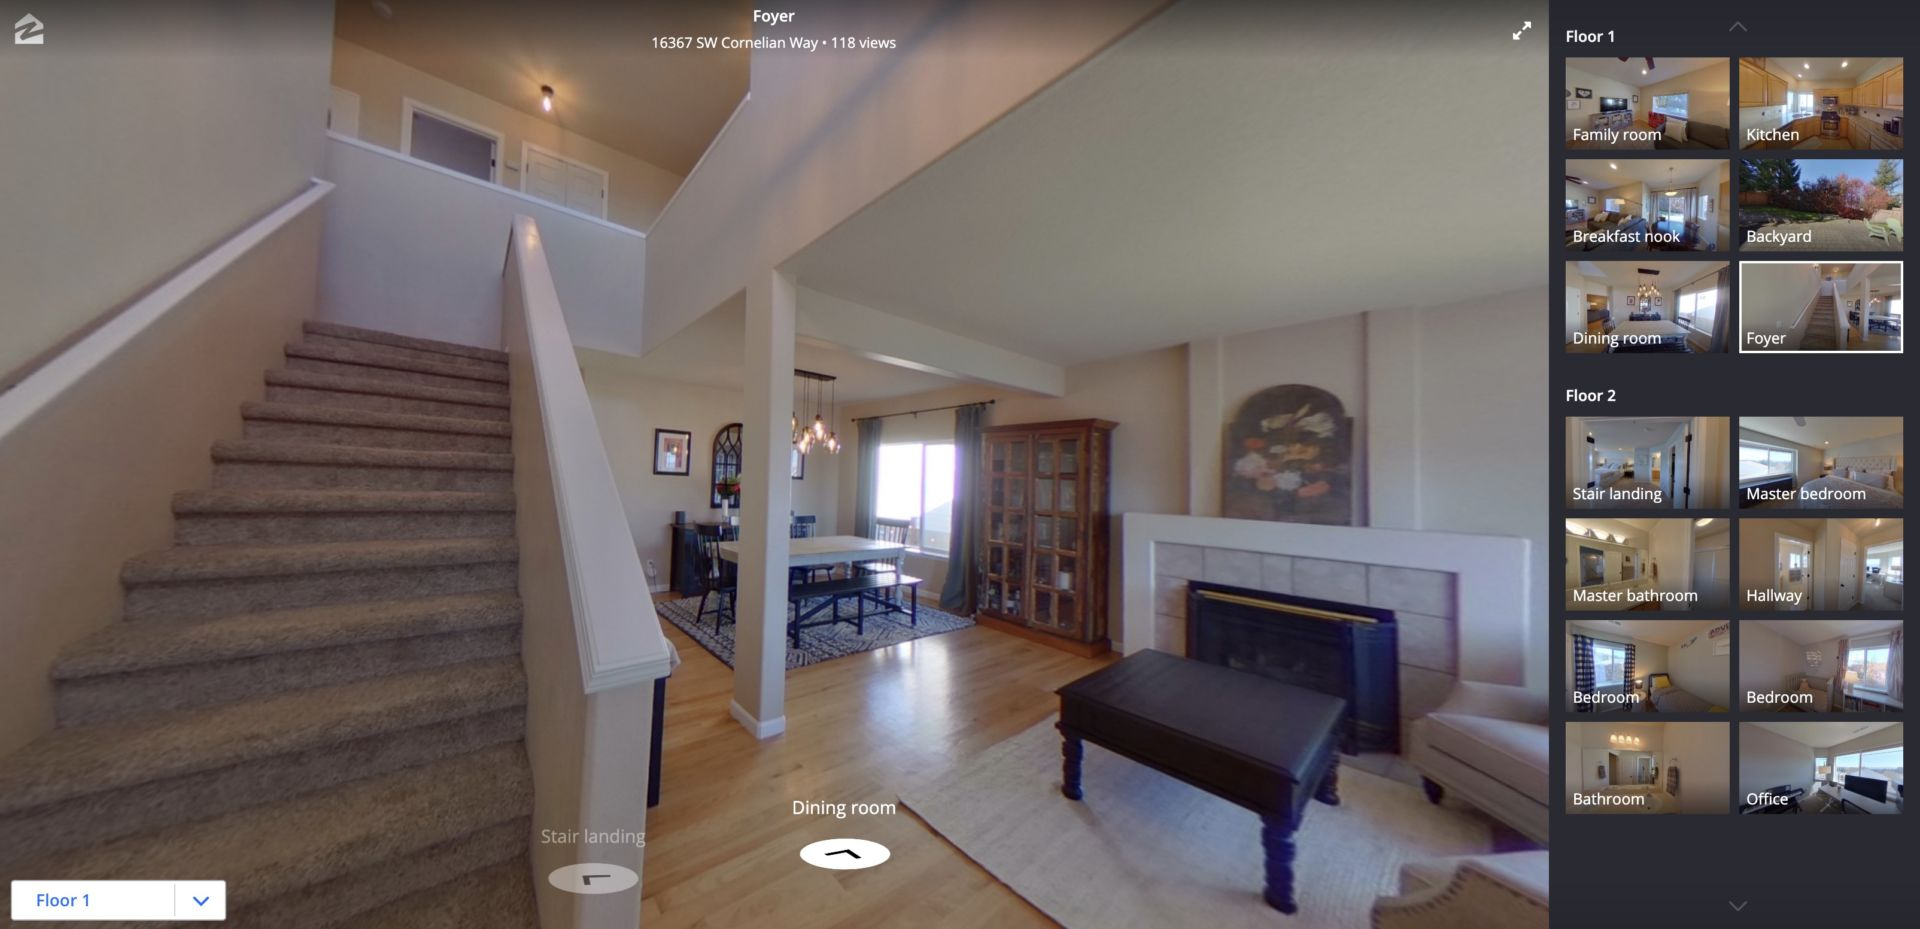 zillow 3D tour is key to selling your home during quarantine